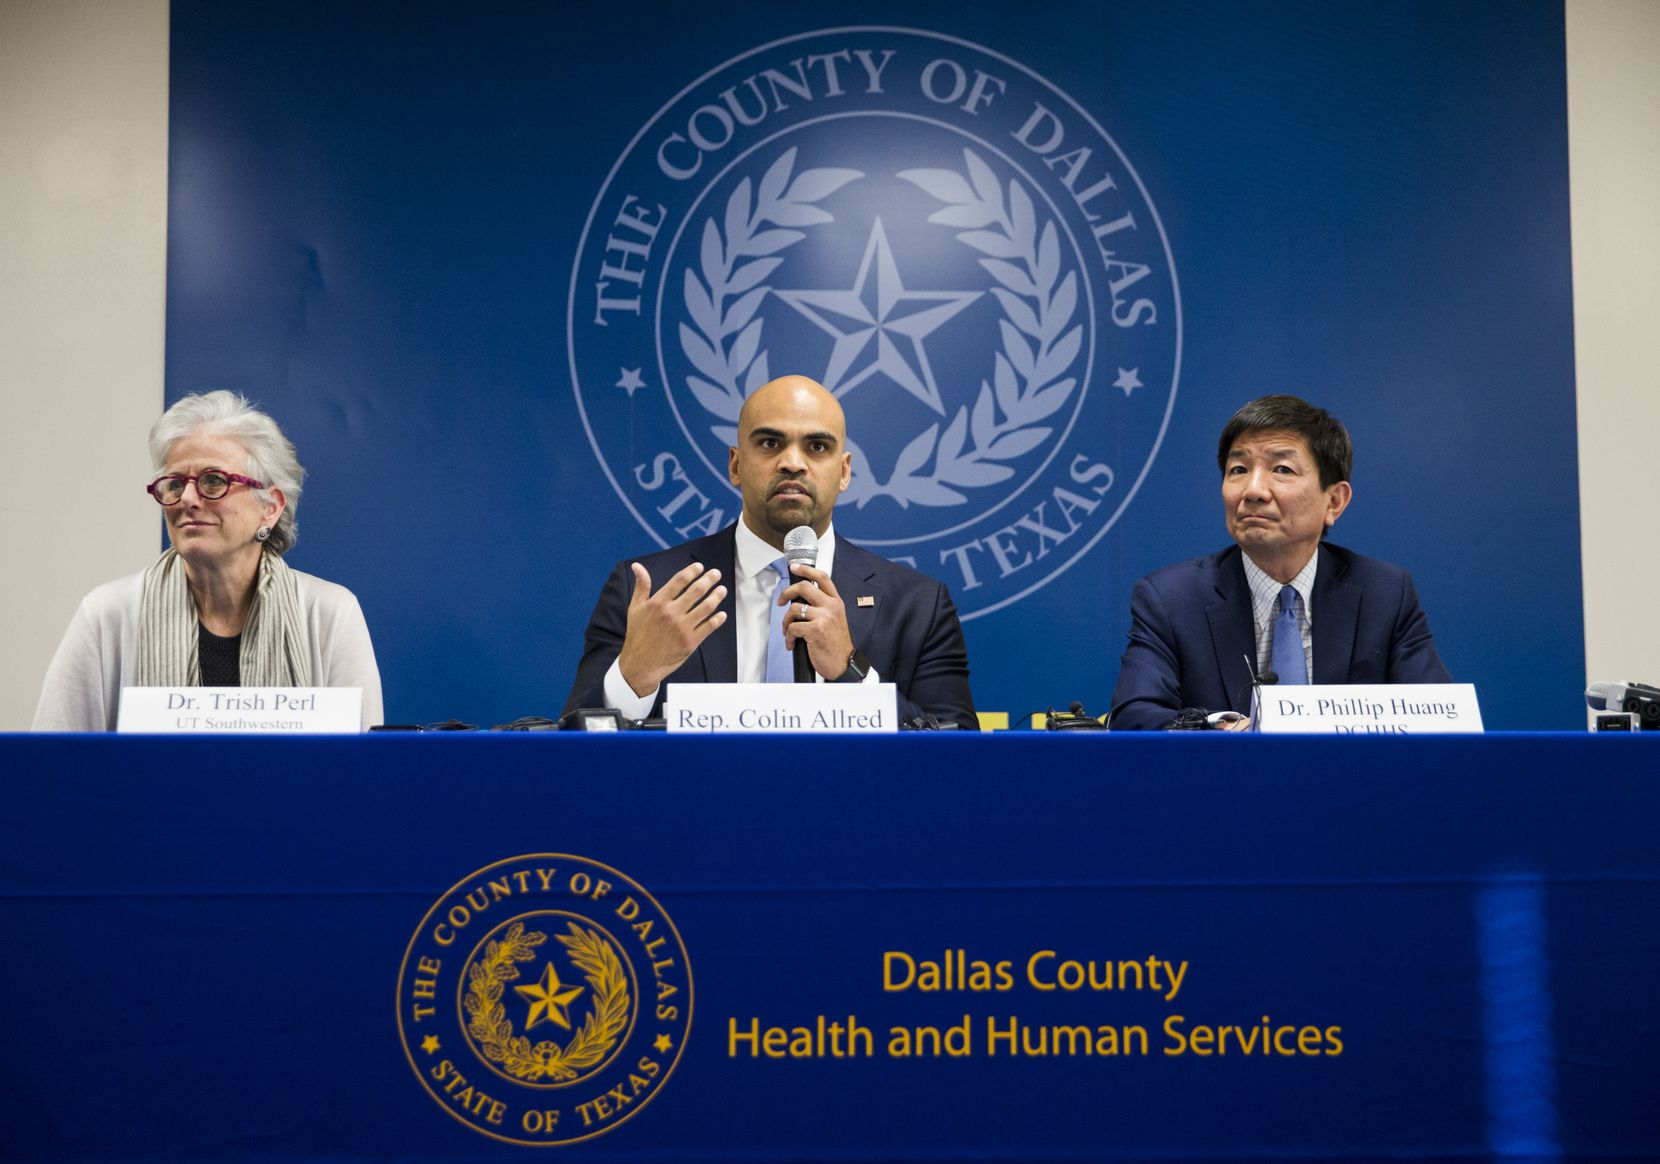 """Rep. Colin Allred, D-Dallas, (center) said he was proud to be the first African-American to represent the 32nd Congressional District. He said he's """"used that perspective to try to serve everyone."""" (Ashley Landis/The Dallas Morning News)"""